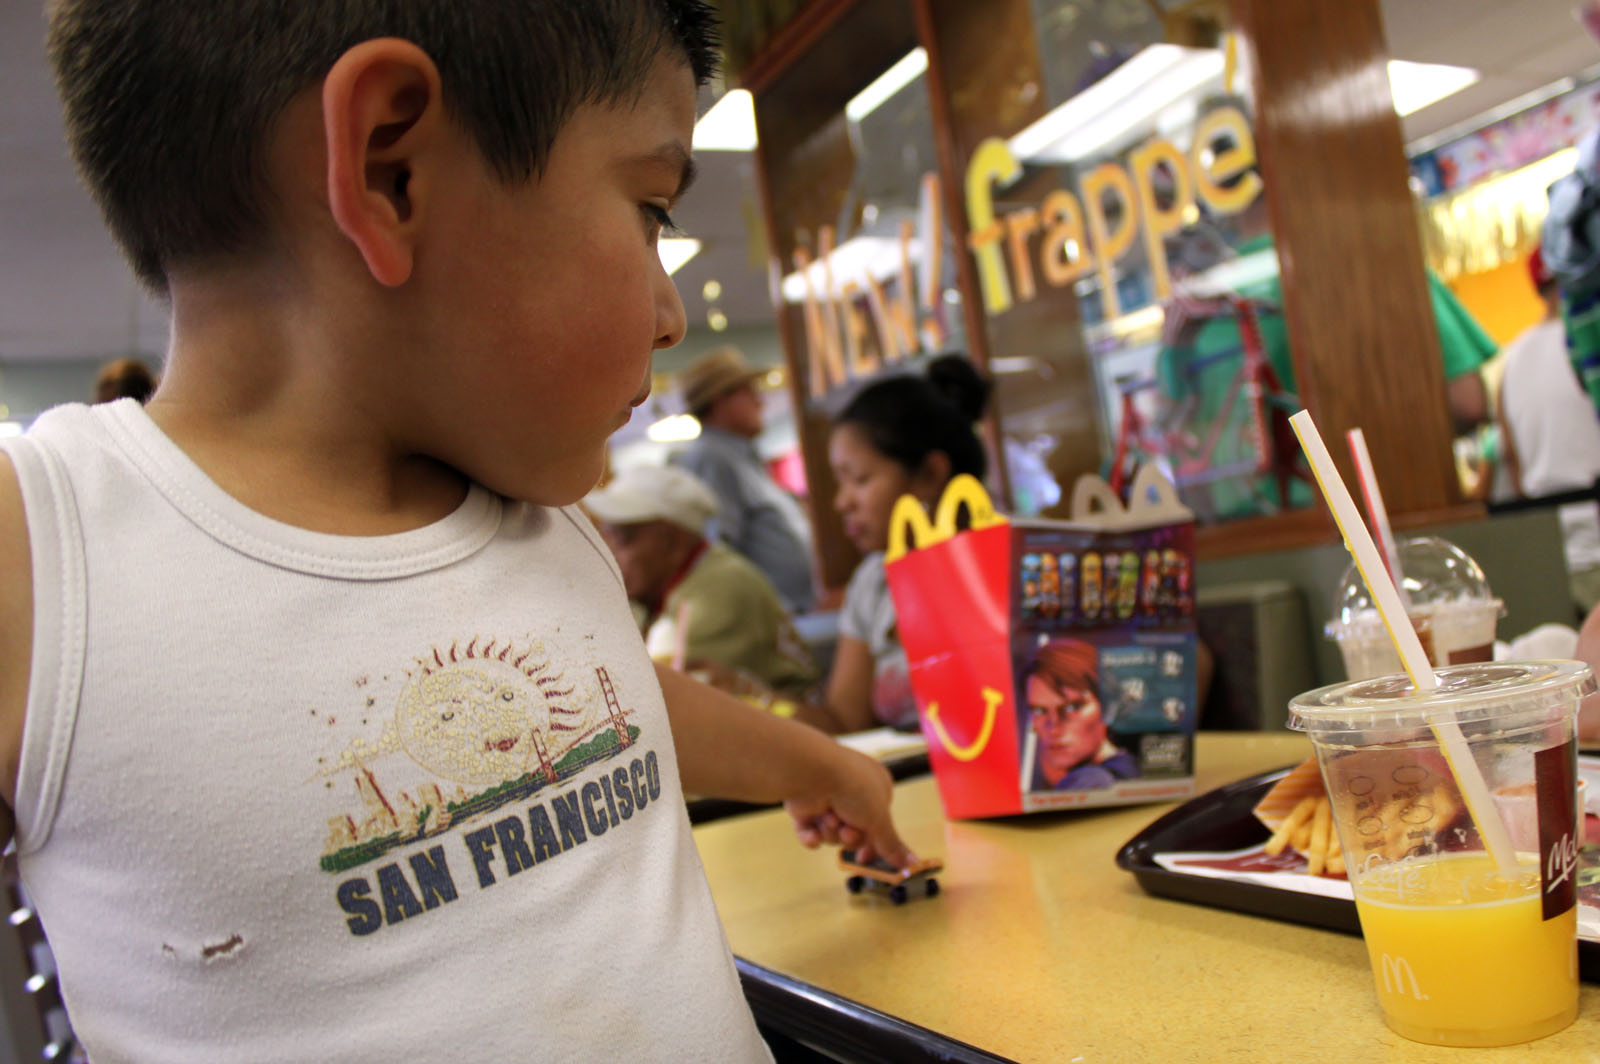 Happy Meal? The Toy's the Draw, Say Mission Parents